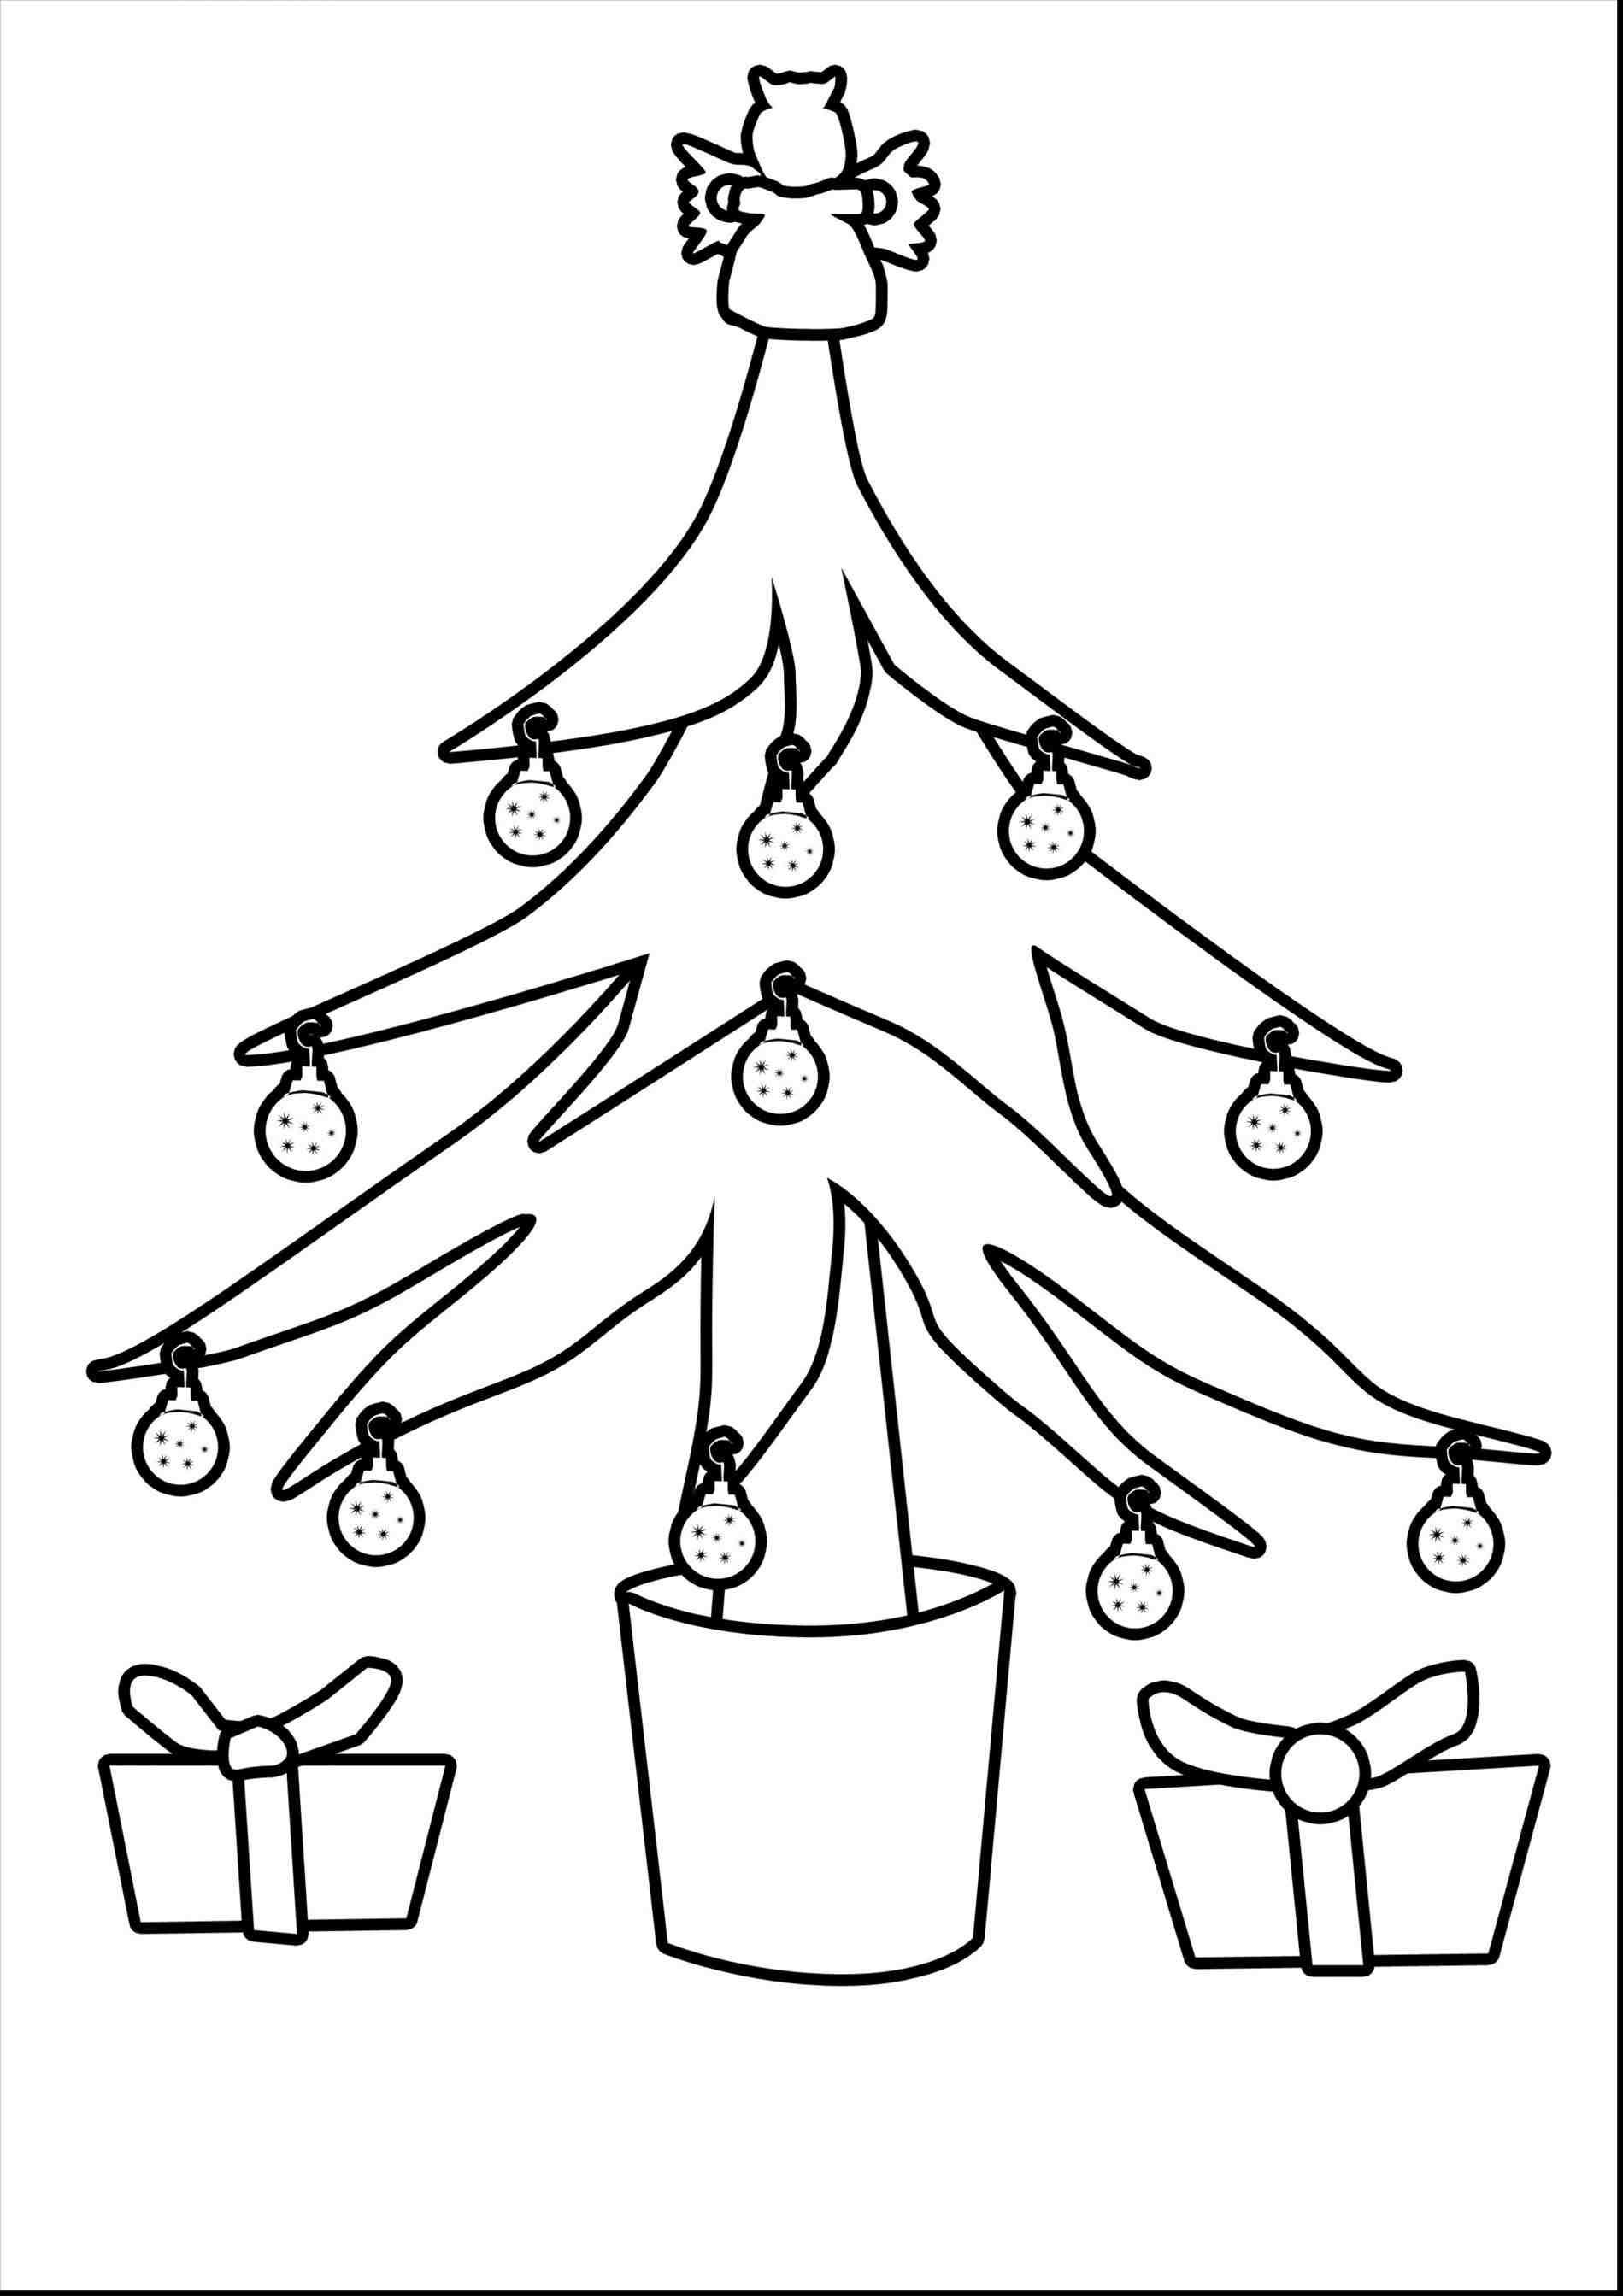 Christmas Quotes Coloring Pages With New Post Tree Ornaments For Kids